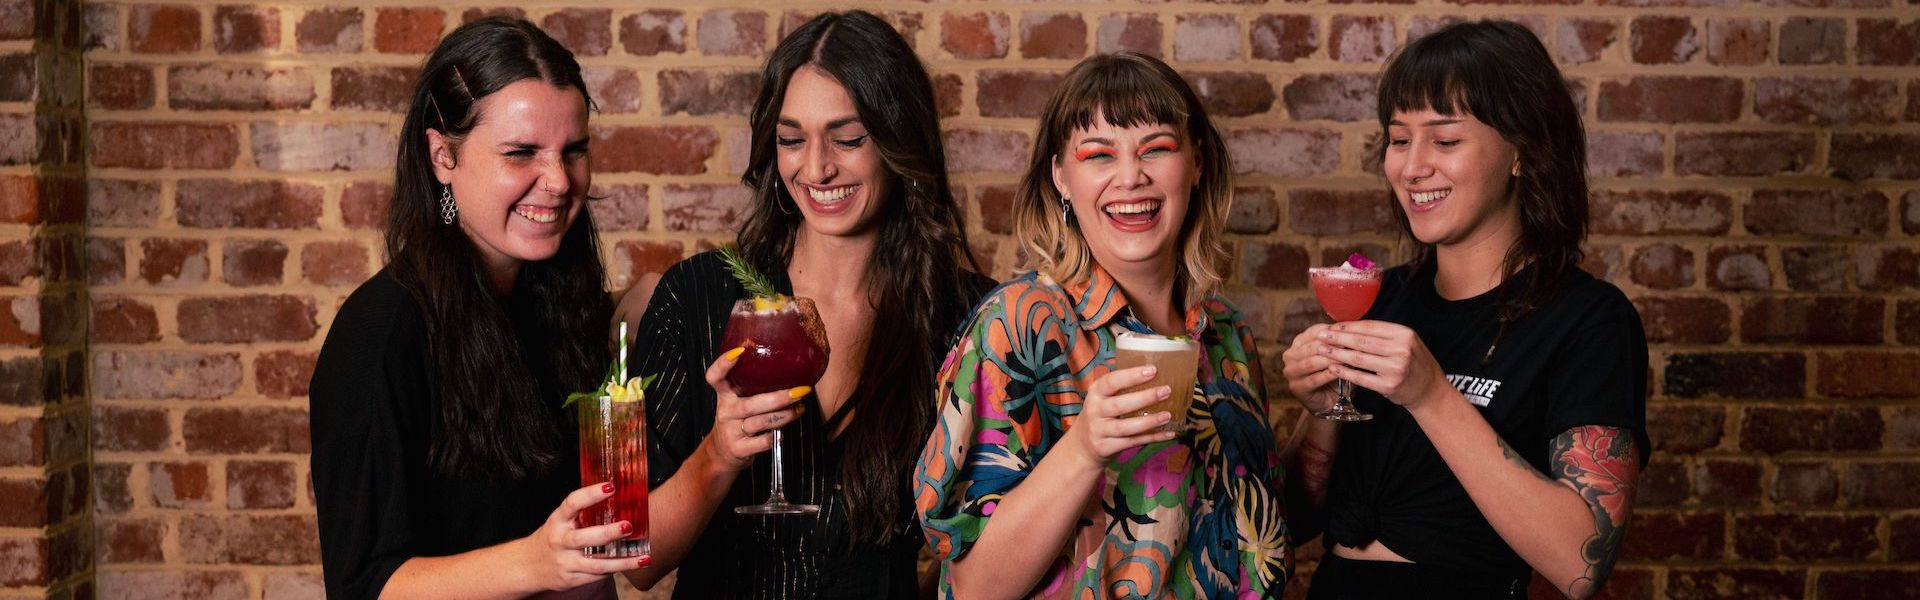 Four women hold cocktails and laugh